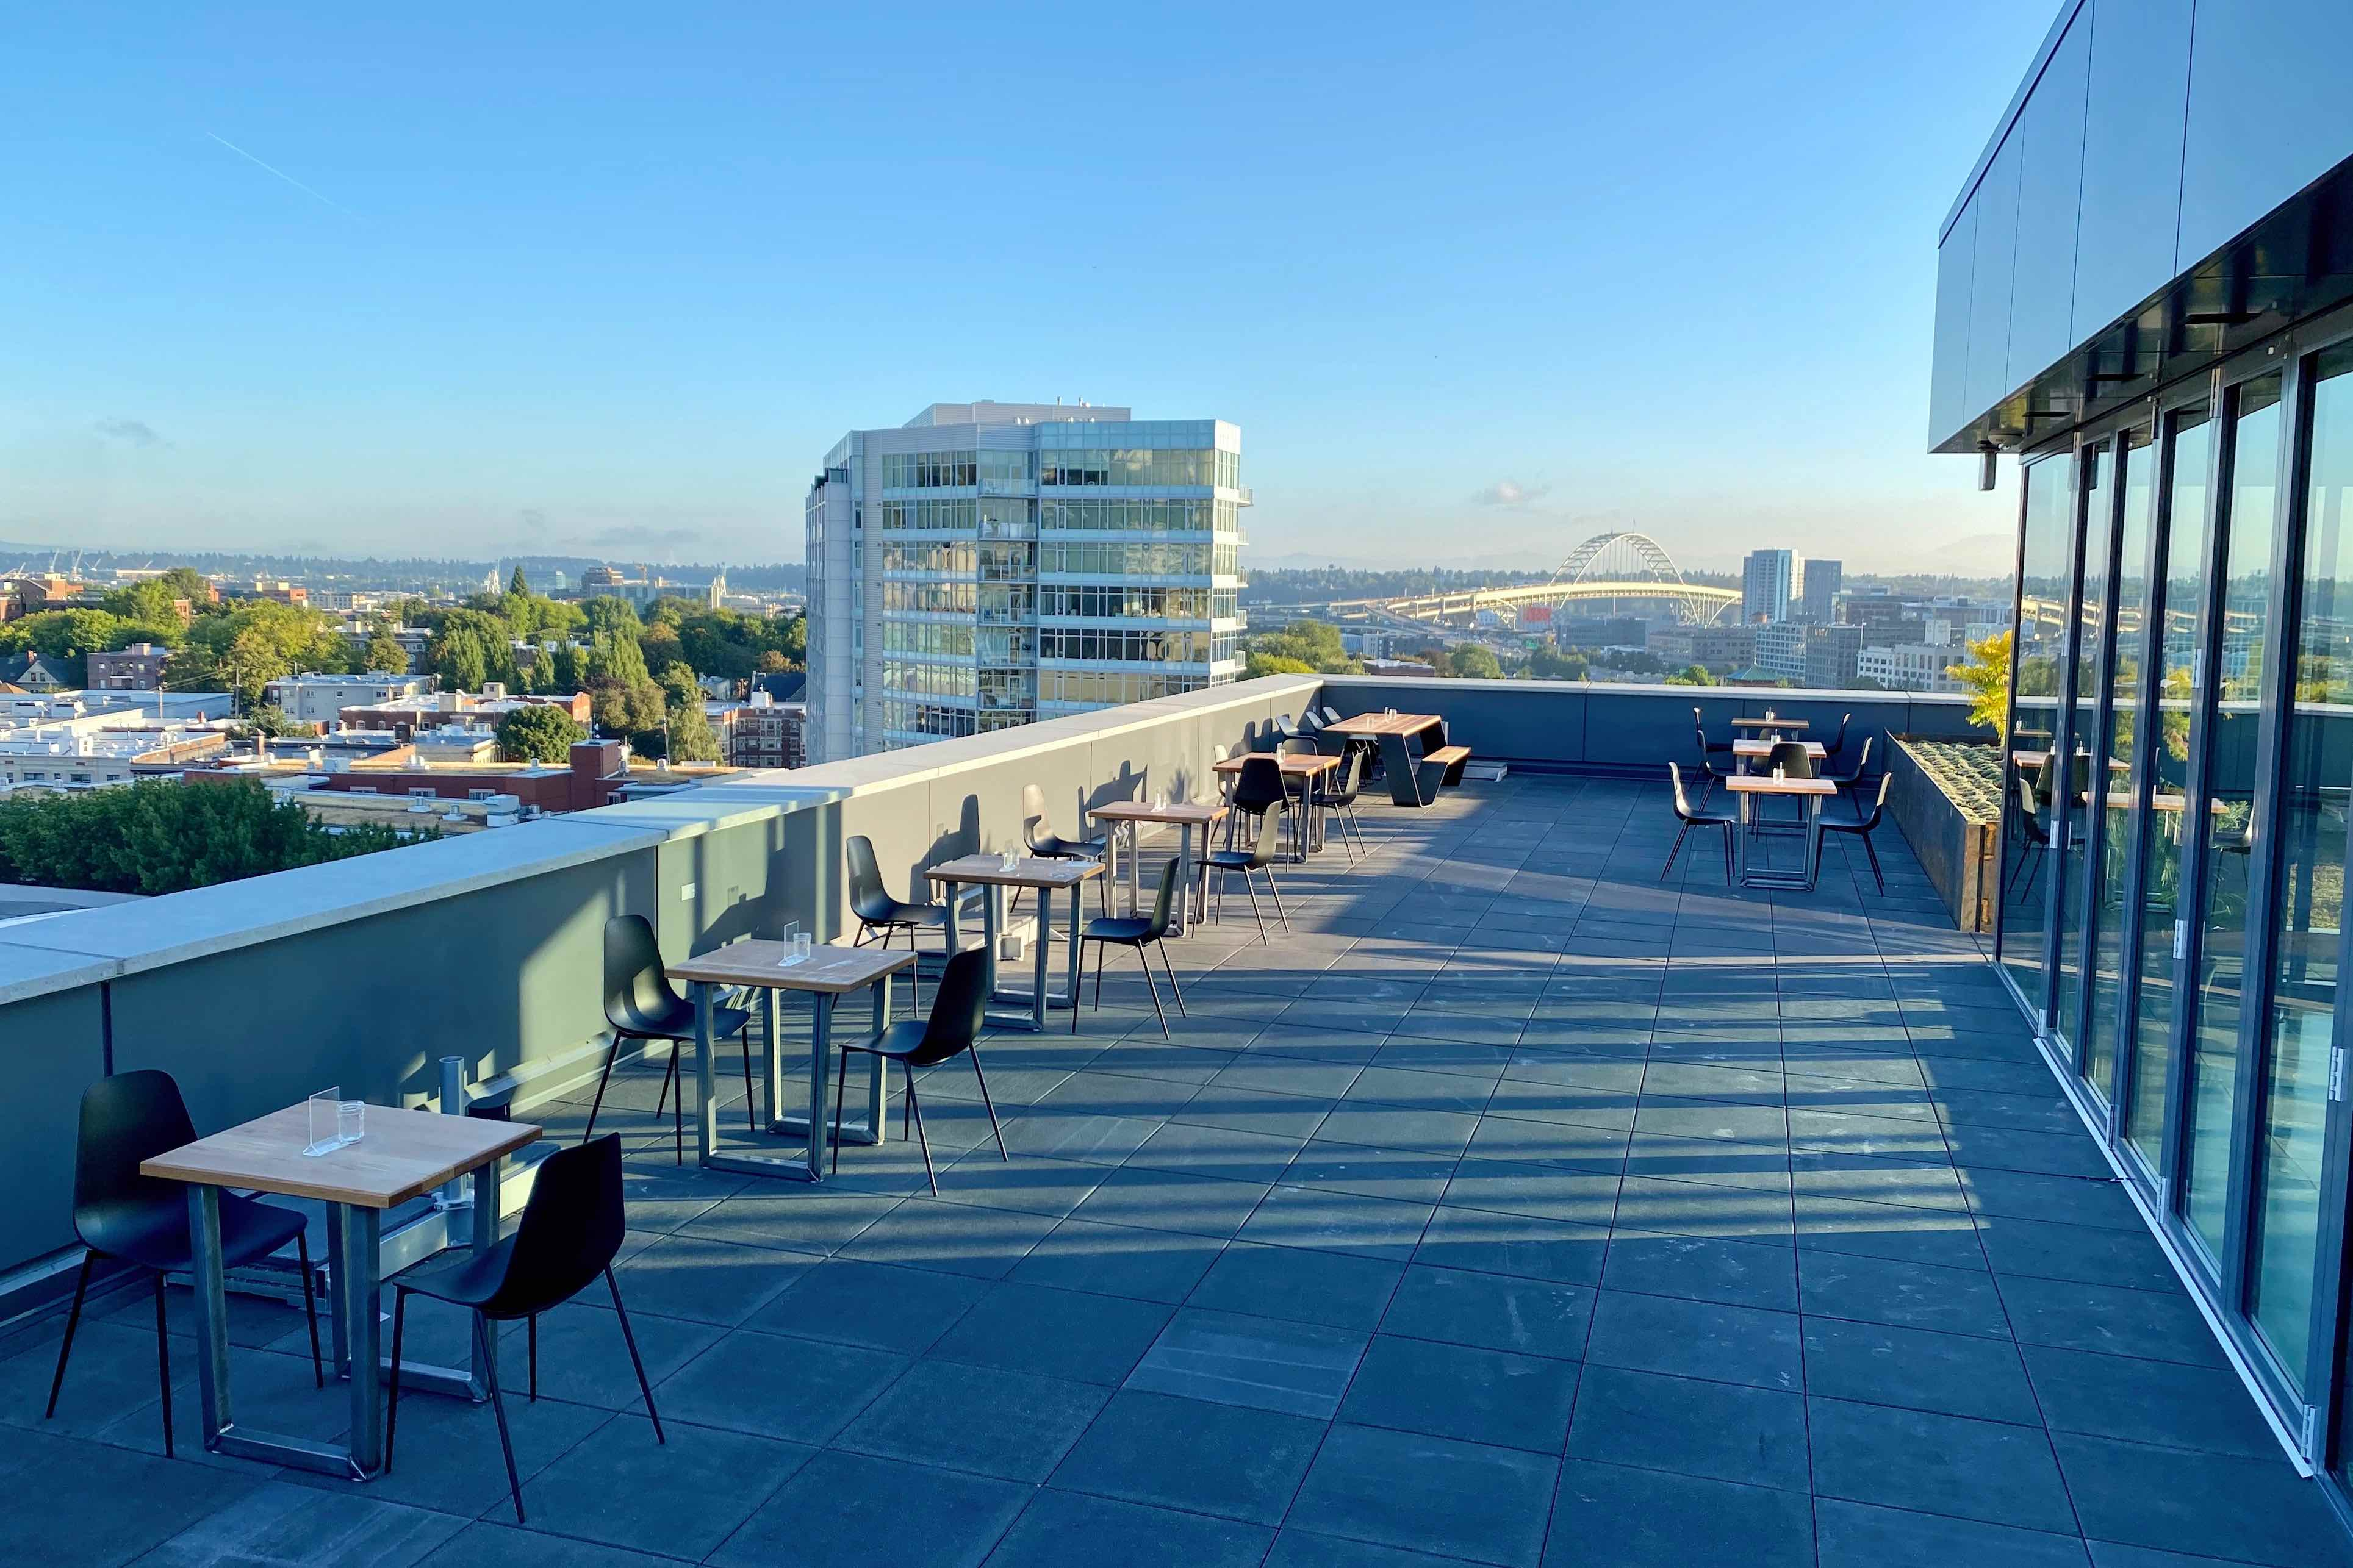 image of the Canvas Rooftop Patio courtesy of Migration Brewing